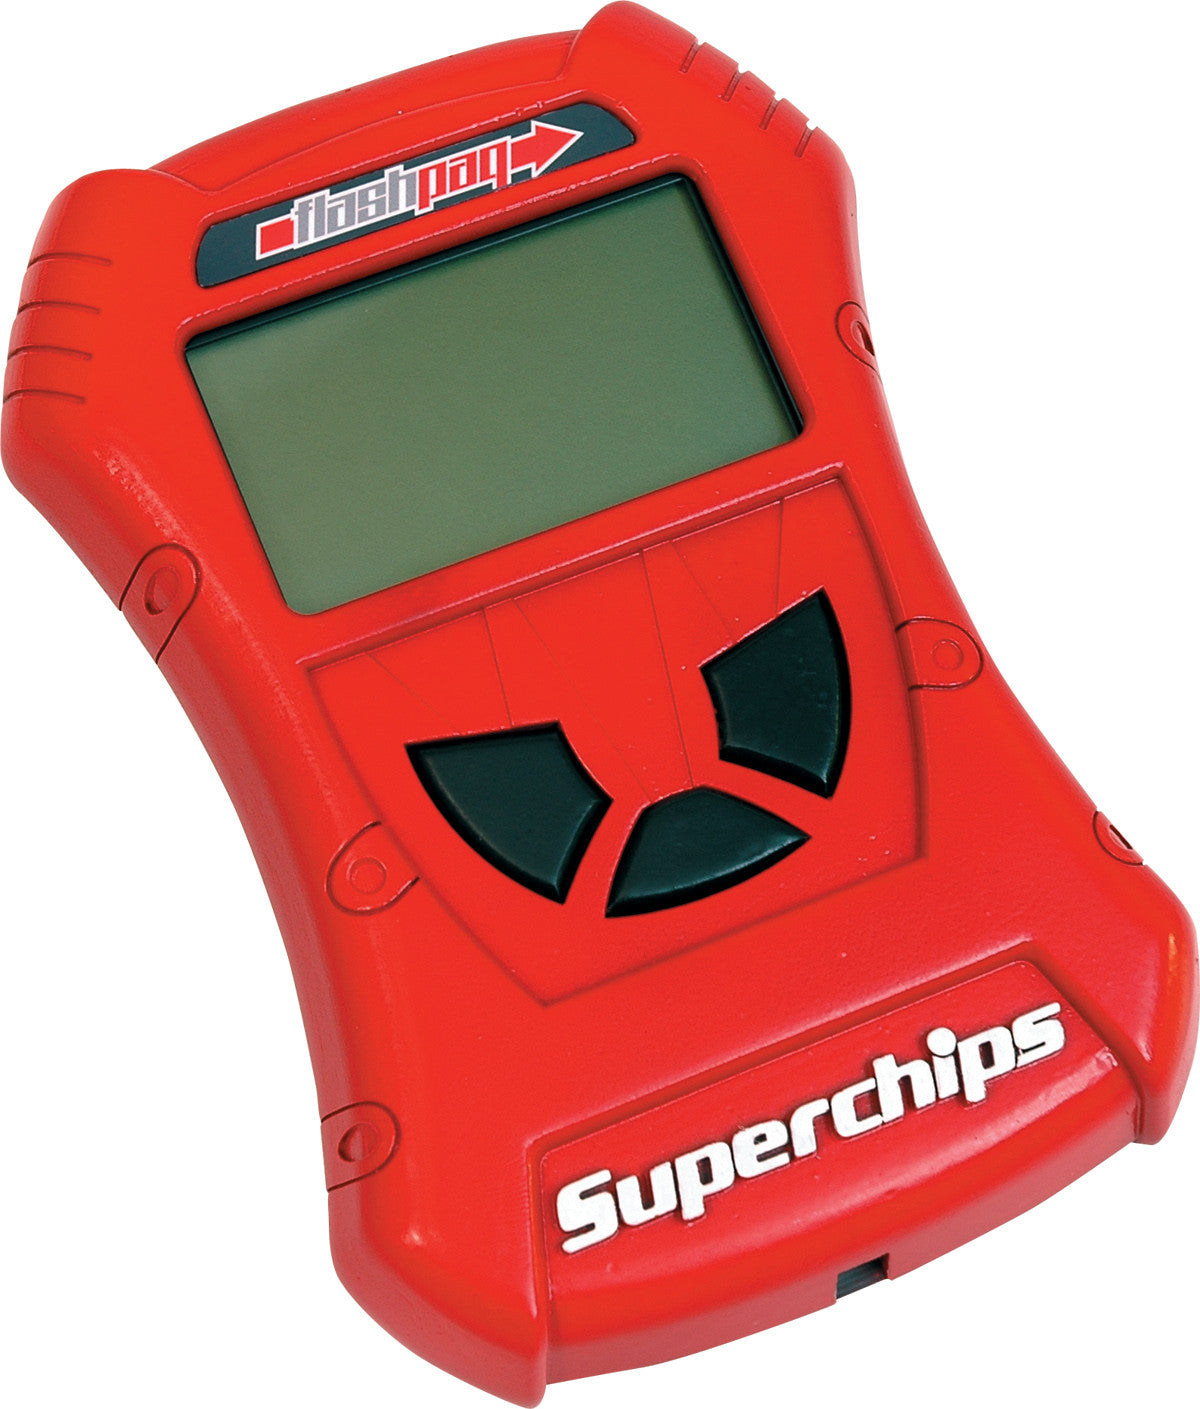 Superchips 1815 Performance Tuner Programmer 1998-2008 Ford Trucks SUV's